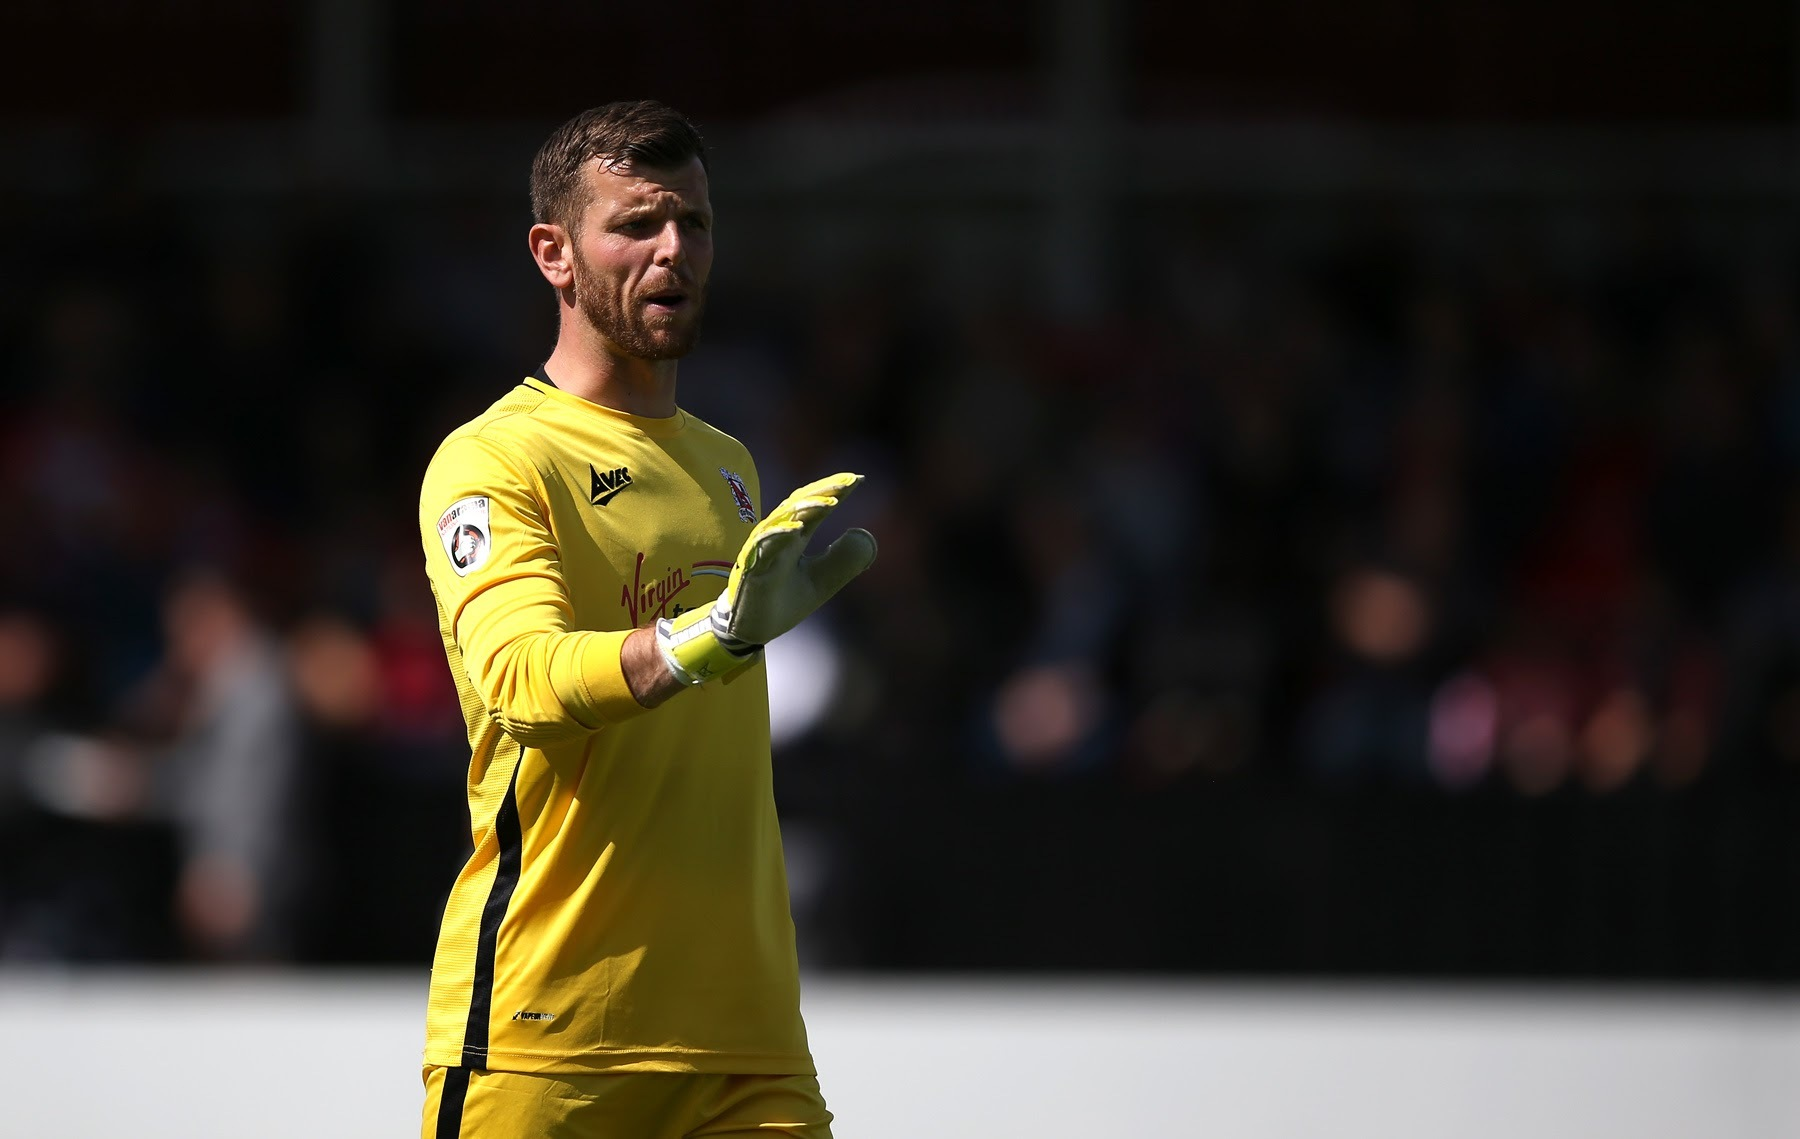 Goalkeeper Adam Bartlett has joined York City from Darlington for an undisclosed fee